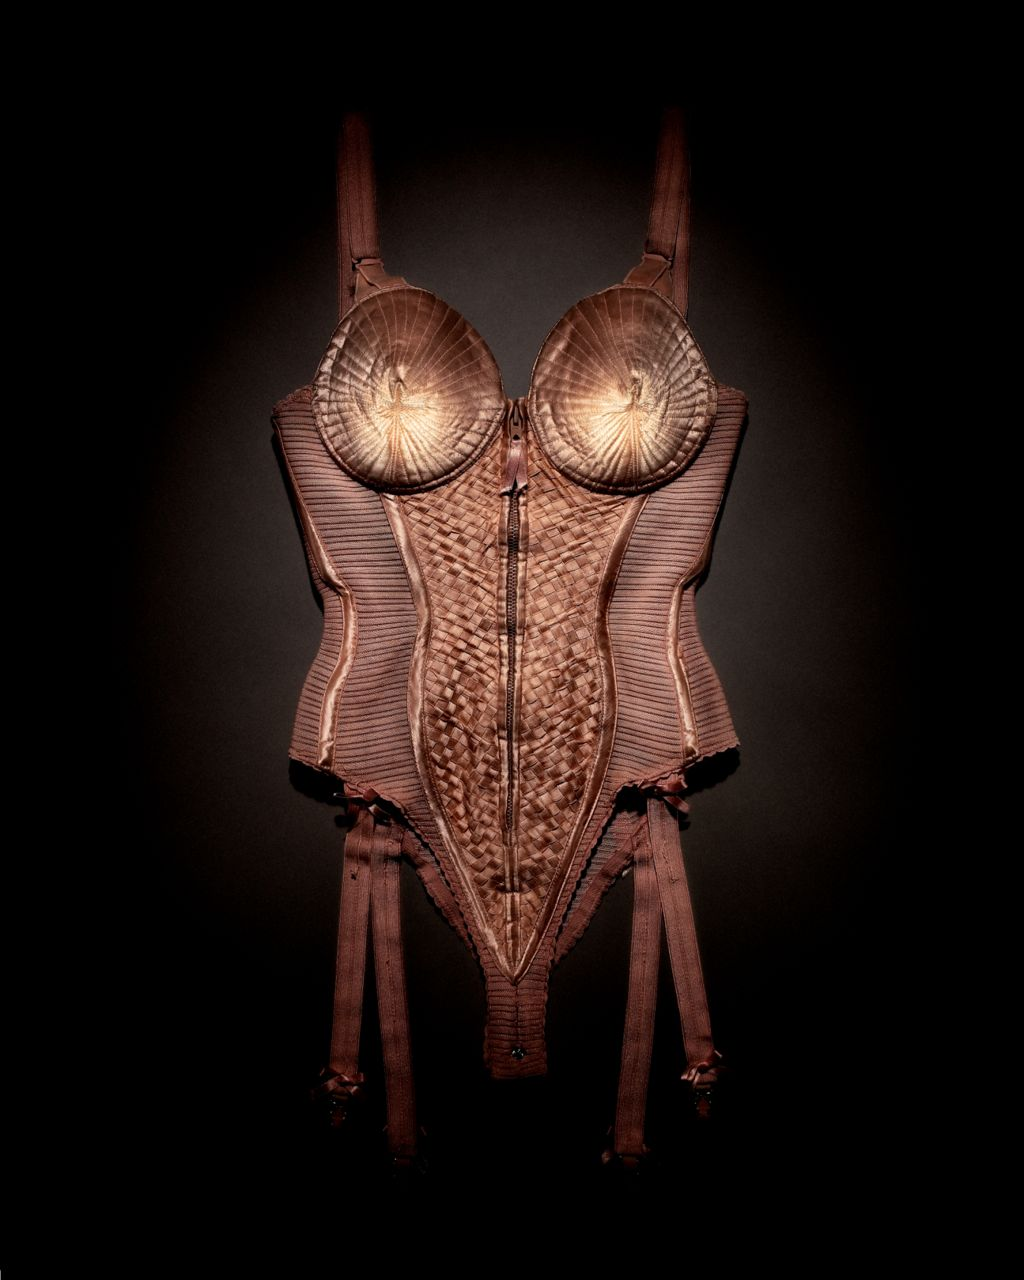 3 - Emil Larsson, body corset worn by Madonna, Blond Ambition World Tour. The Fashion World of Jean Paul Gaultier